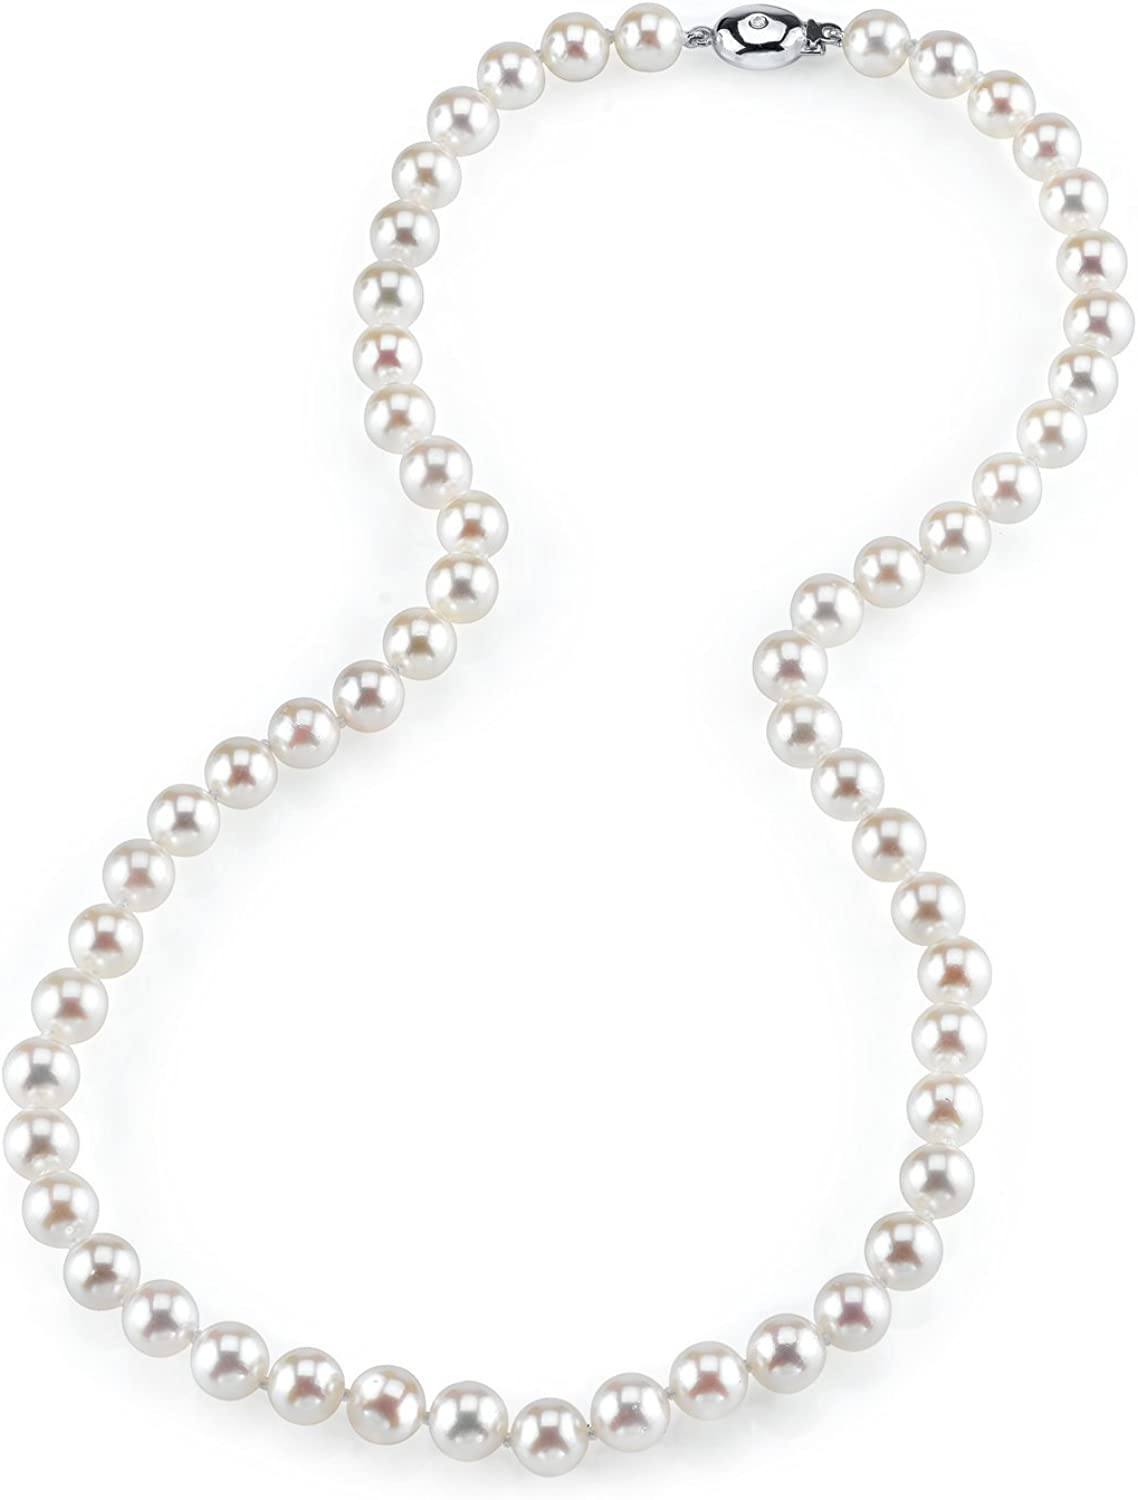 THE PEARL SOURCE 14K Gold 6.5-7.0mm AAA Quality Round Genuine White Japanese Akoya Saltwater Cultured Pearl Necklace in 18